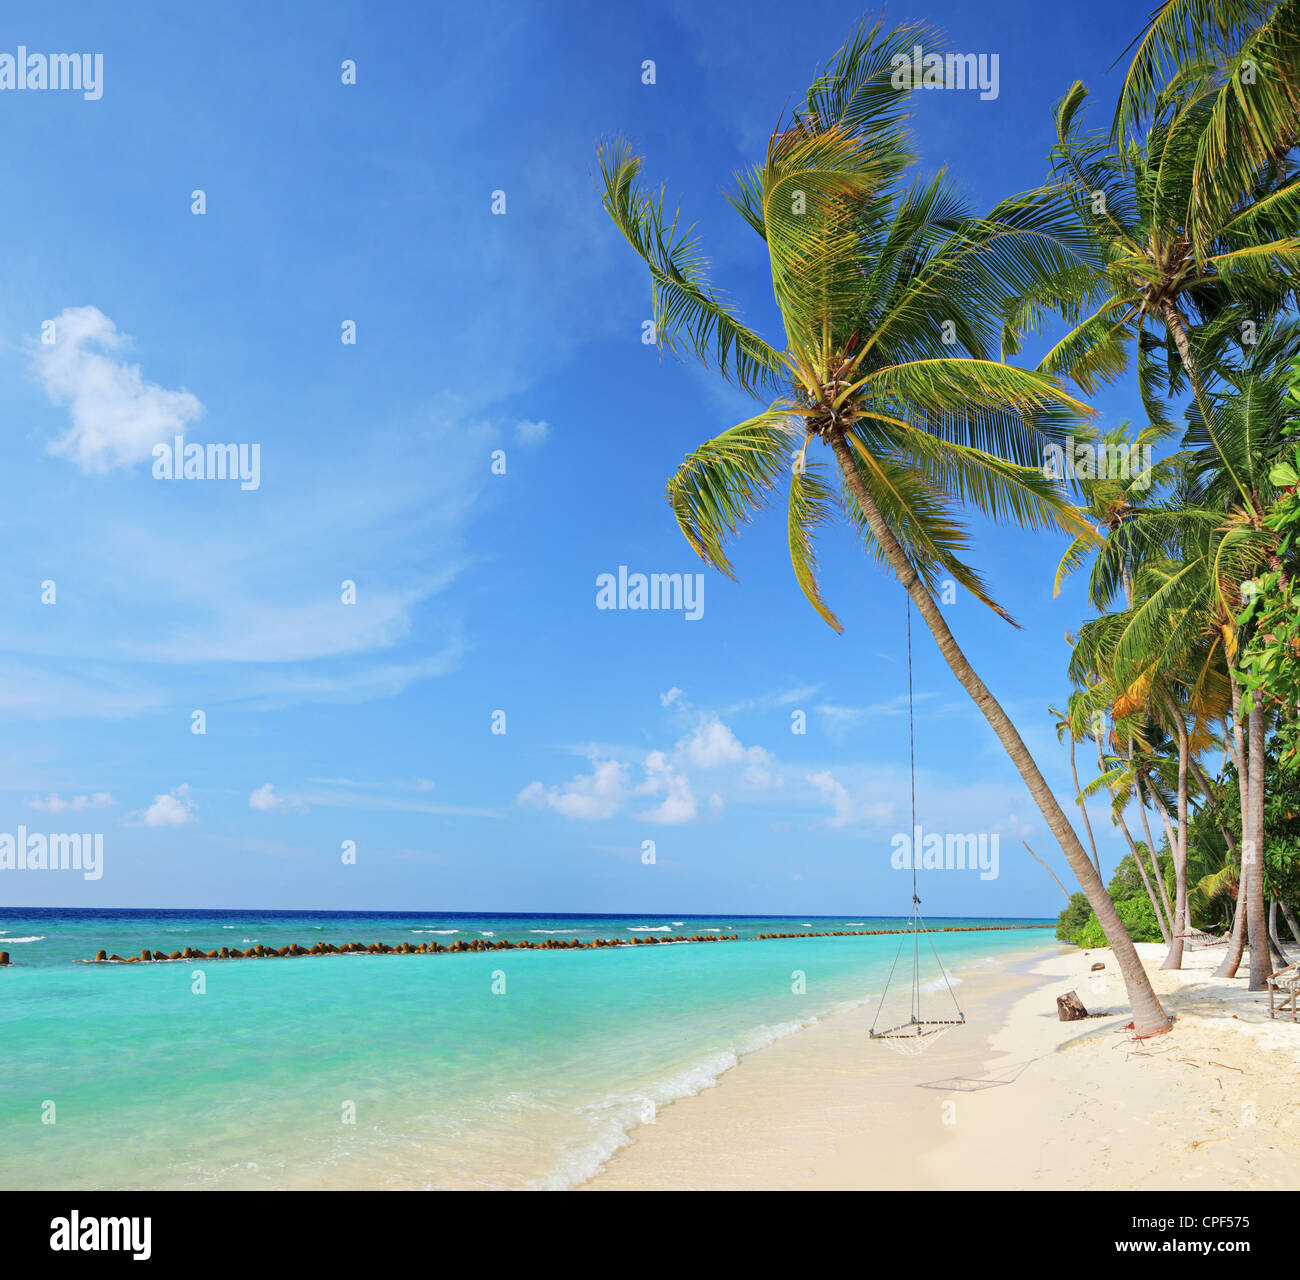 Island Beach Scenes: Beach Scene With A Swing On A Palm Tree On A Sunny Day On